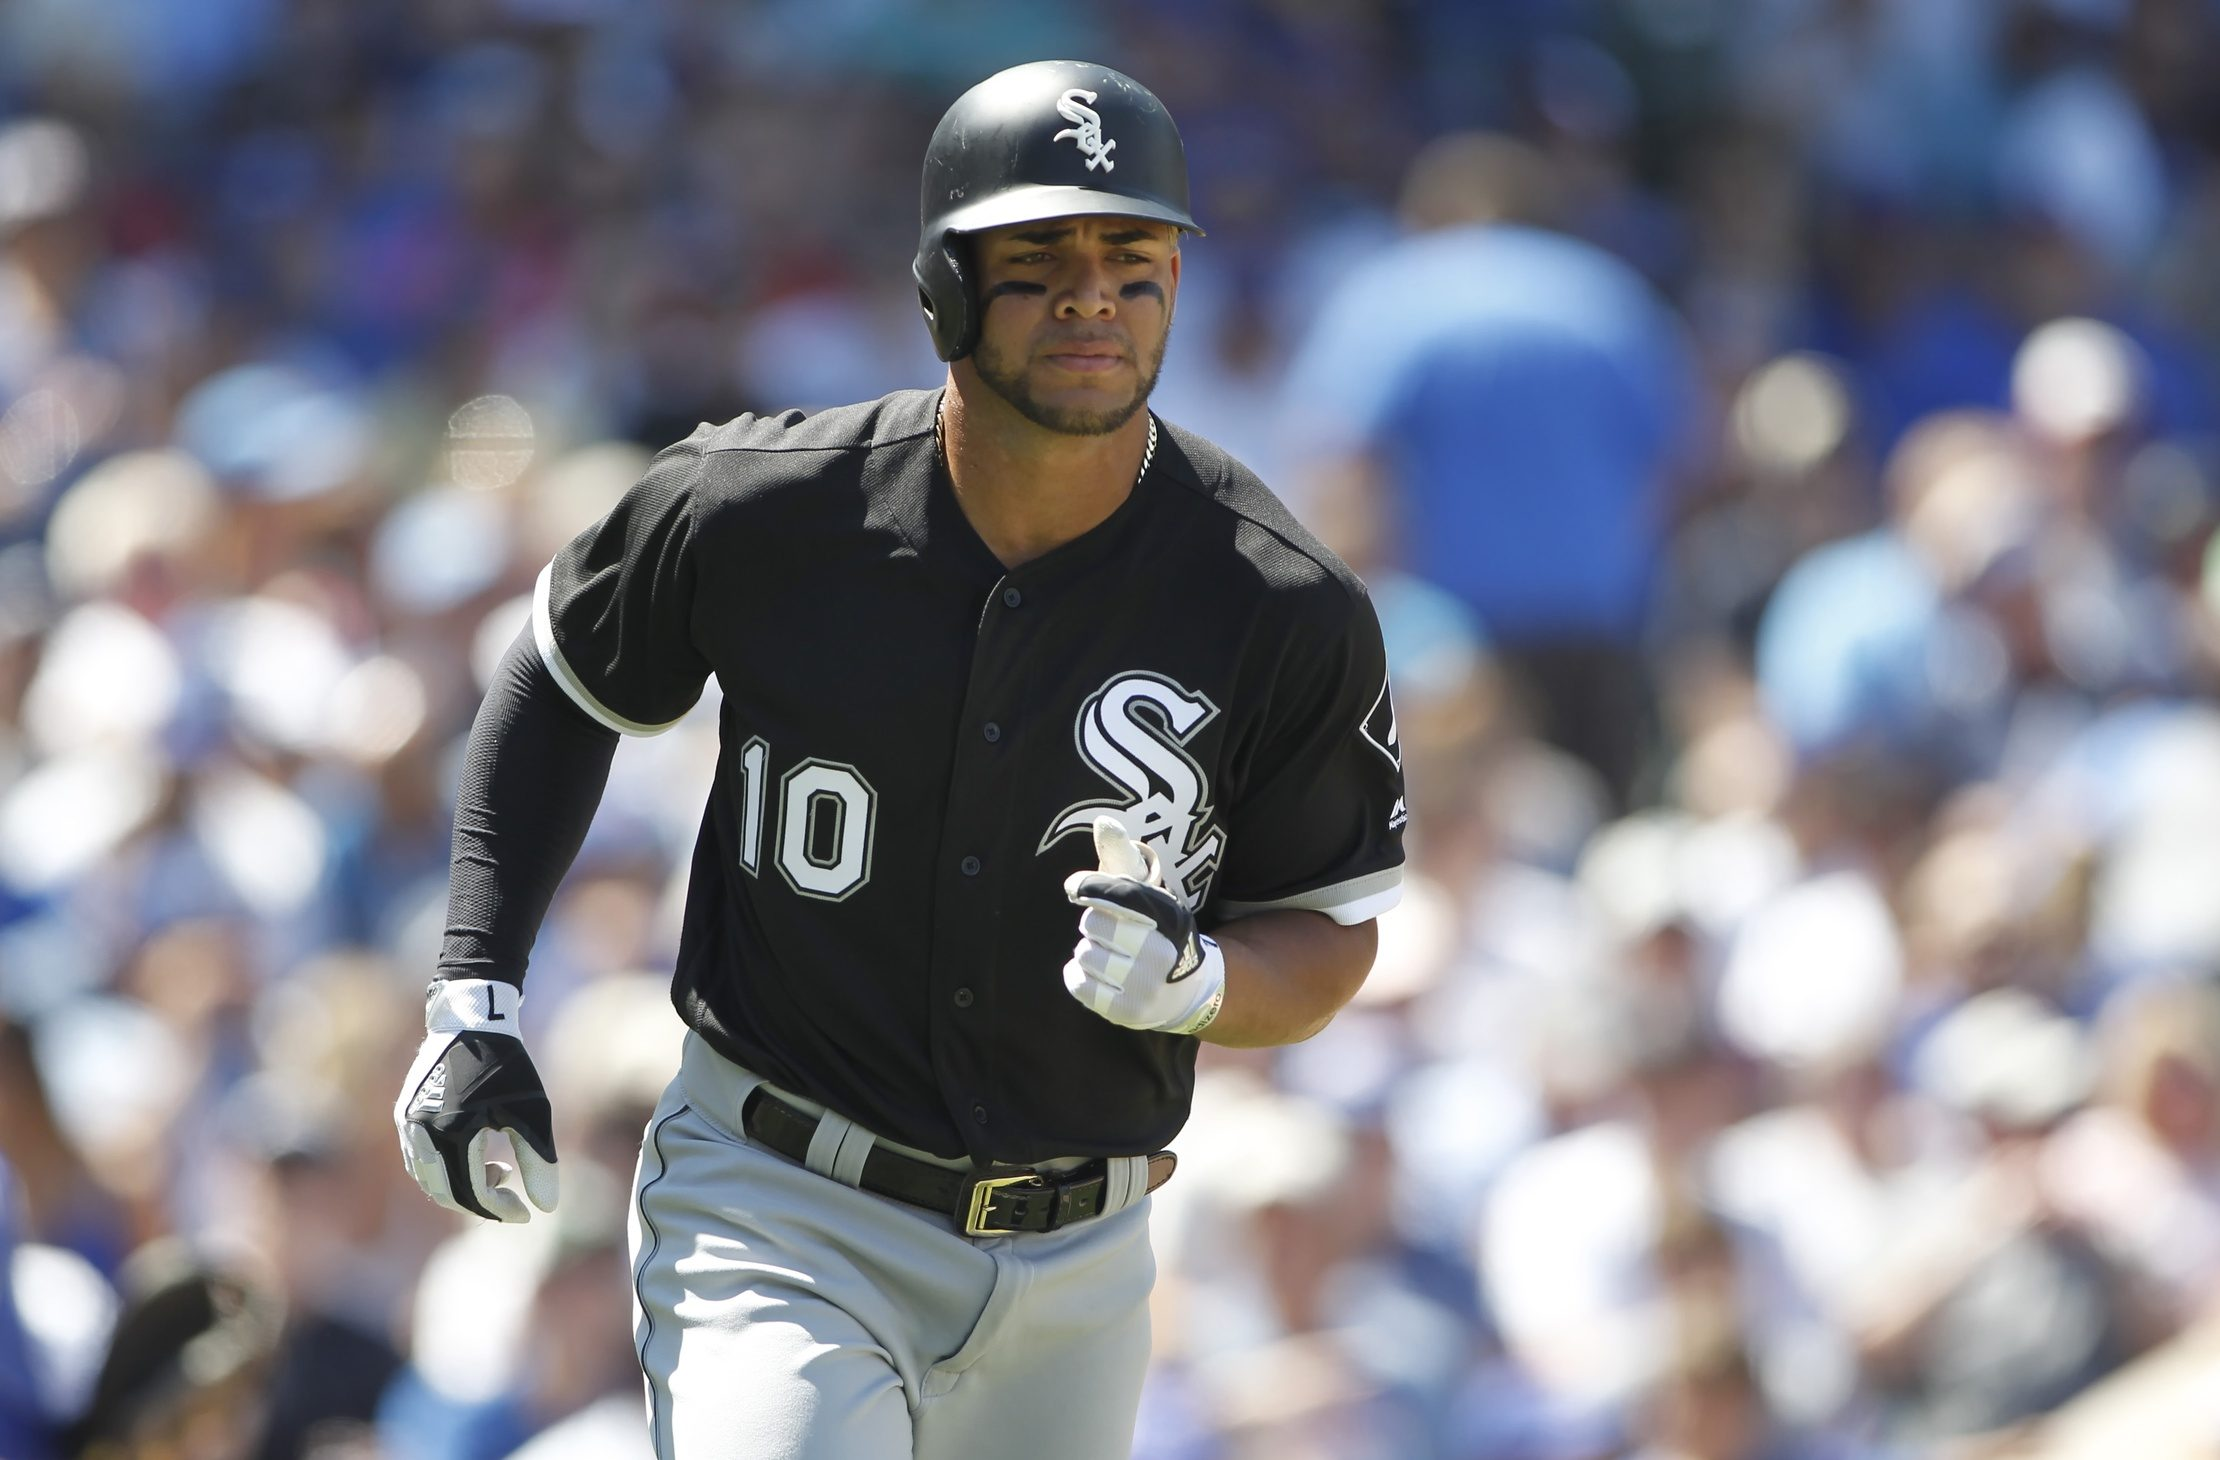 White Sox put Yoán Moncada on 10-day DL, reinstate Matt Davidson